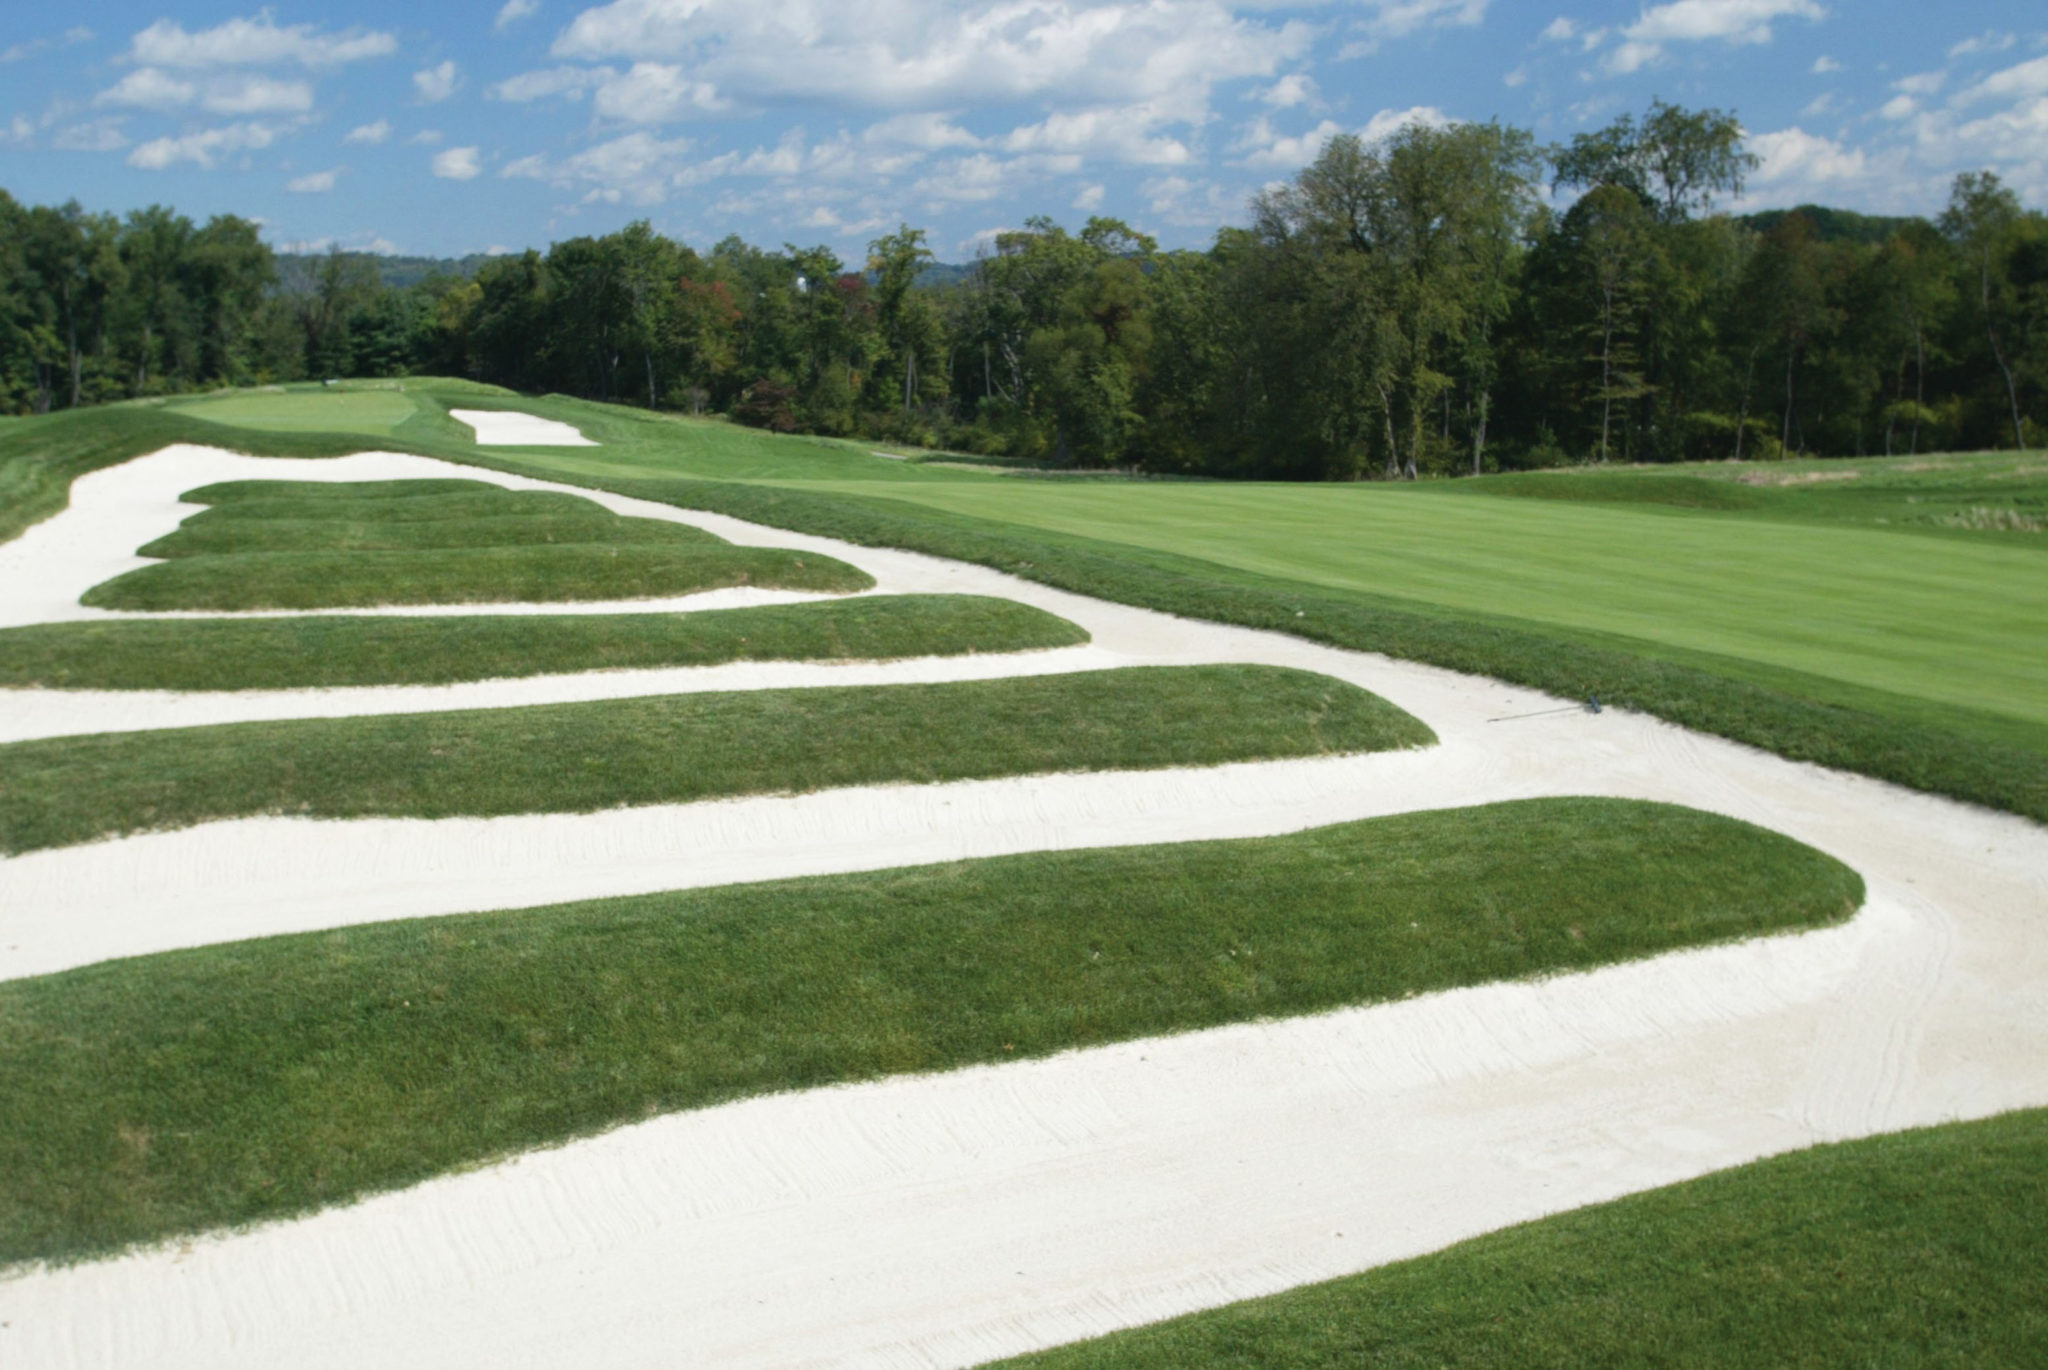 OAKMONT, PA- SEPTEMBER 26:  General view of the church pew bunkering on the 15th hole at Oakmont Country Club, site of the 2007 US Open on September 26, 2006 in Oakmont, Pensylvania. (Photo by Rick Stewart/Getty Images)